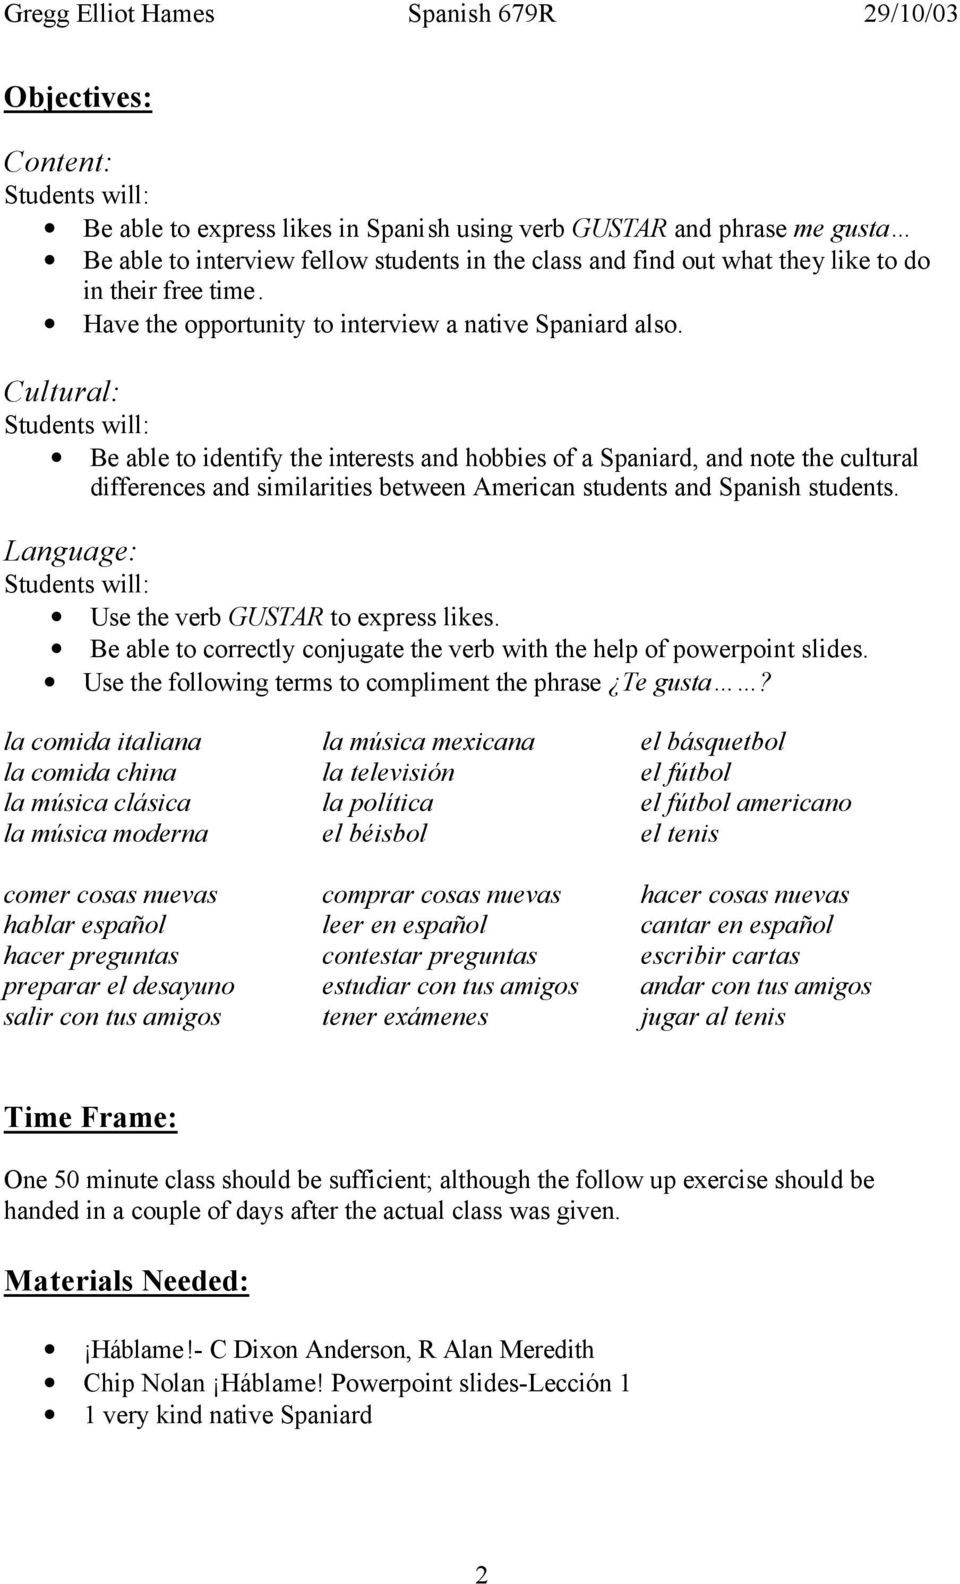 Cultural: Students will: Be able to identify the interests and hobbies of a Spaniard, and note the cultural differences and similarities between American students and Spanish students.